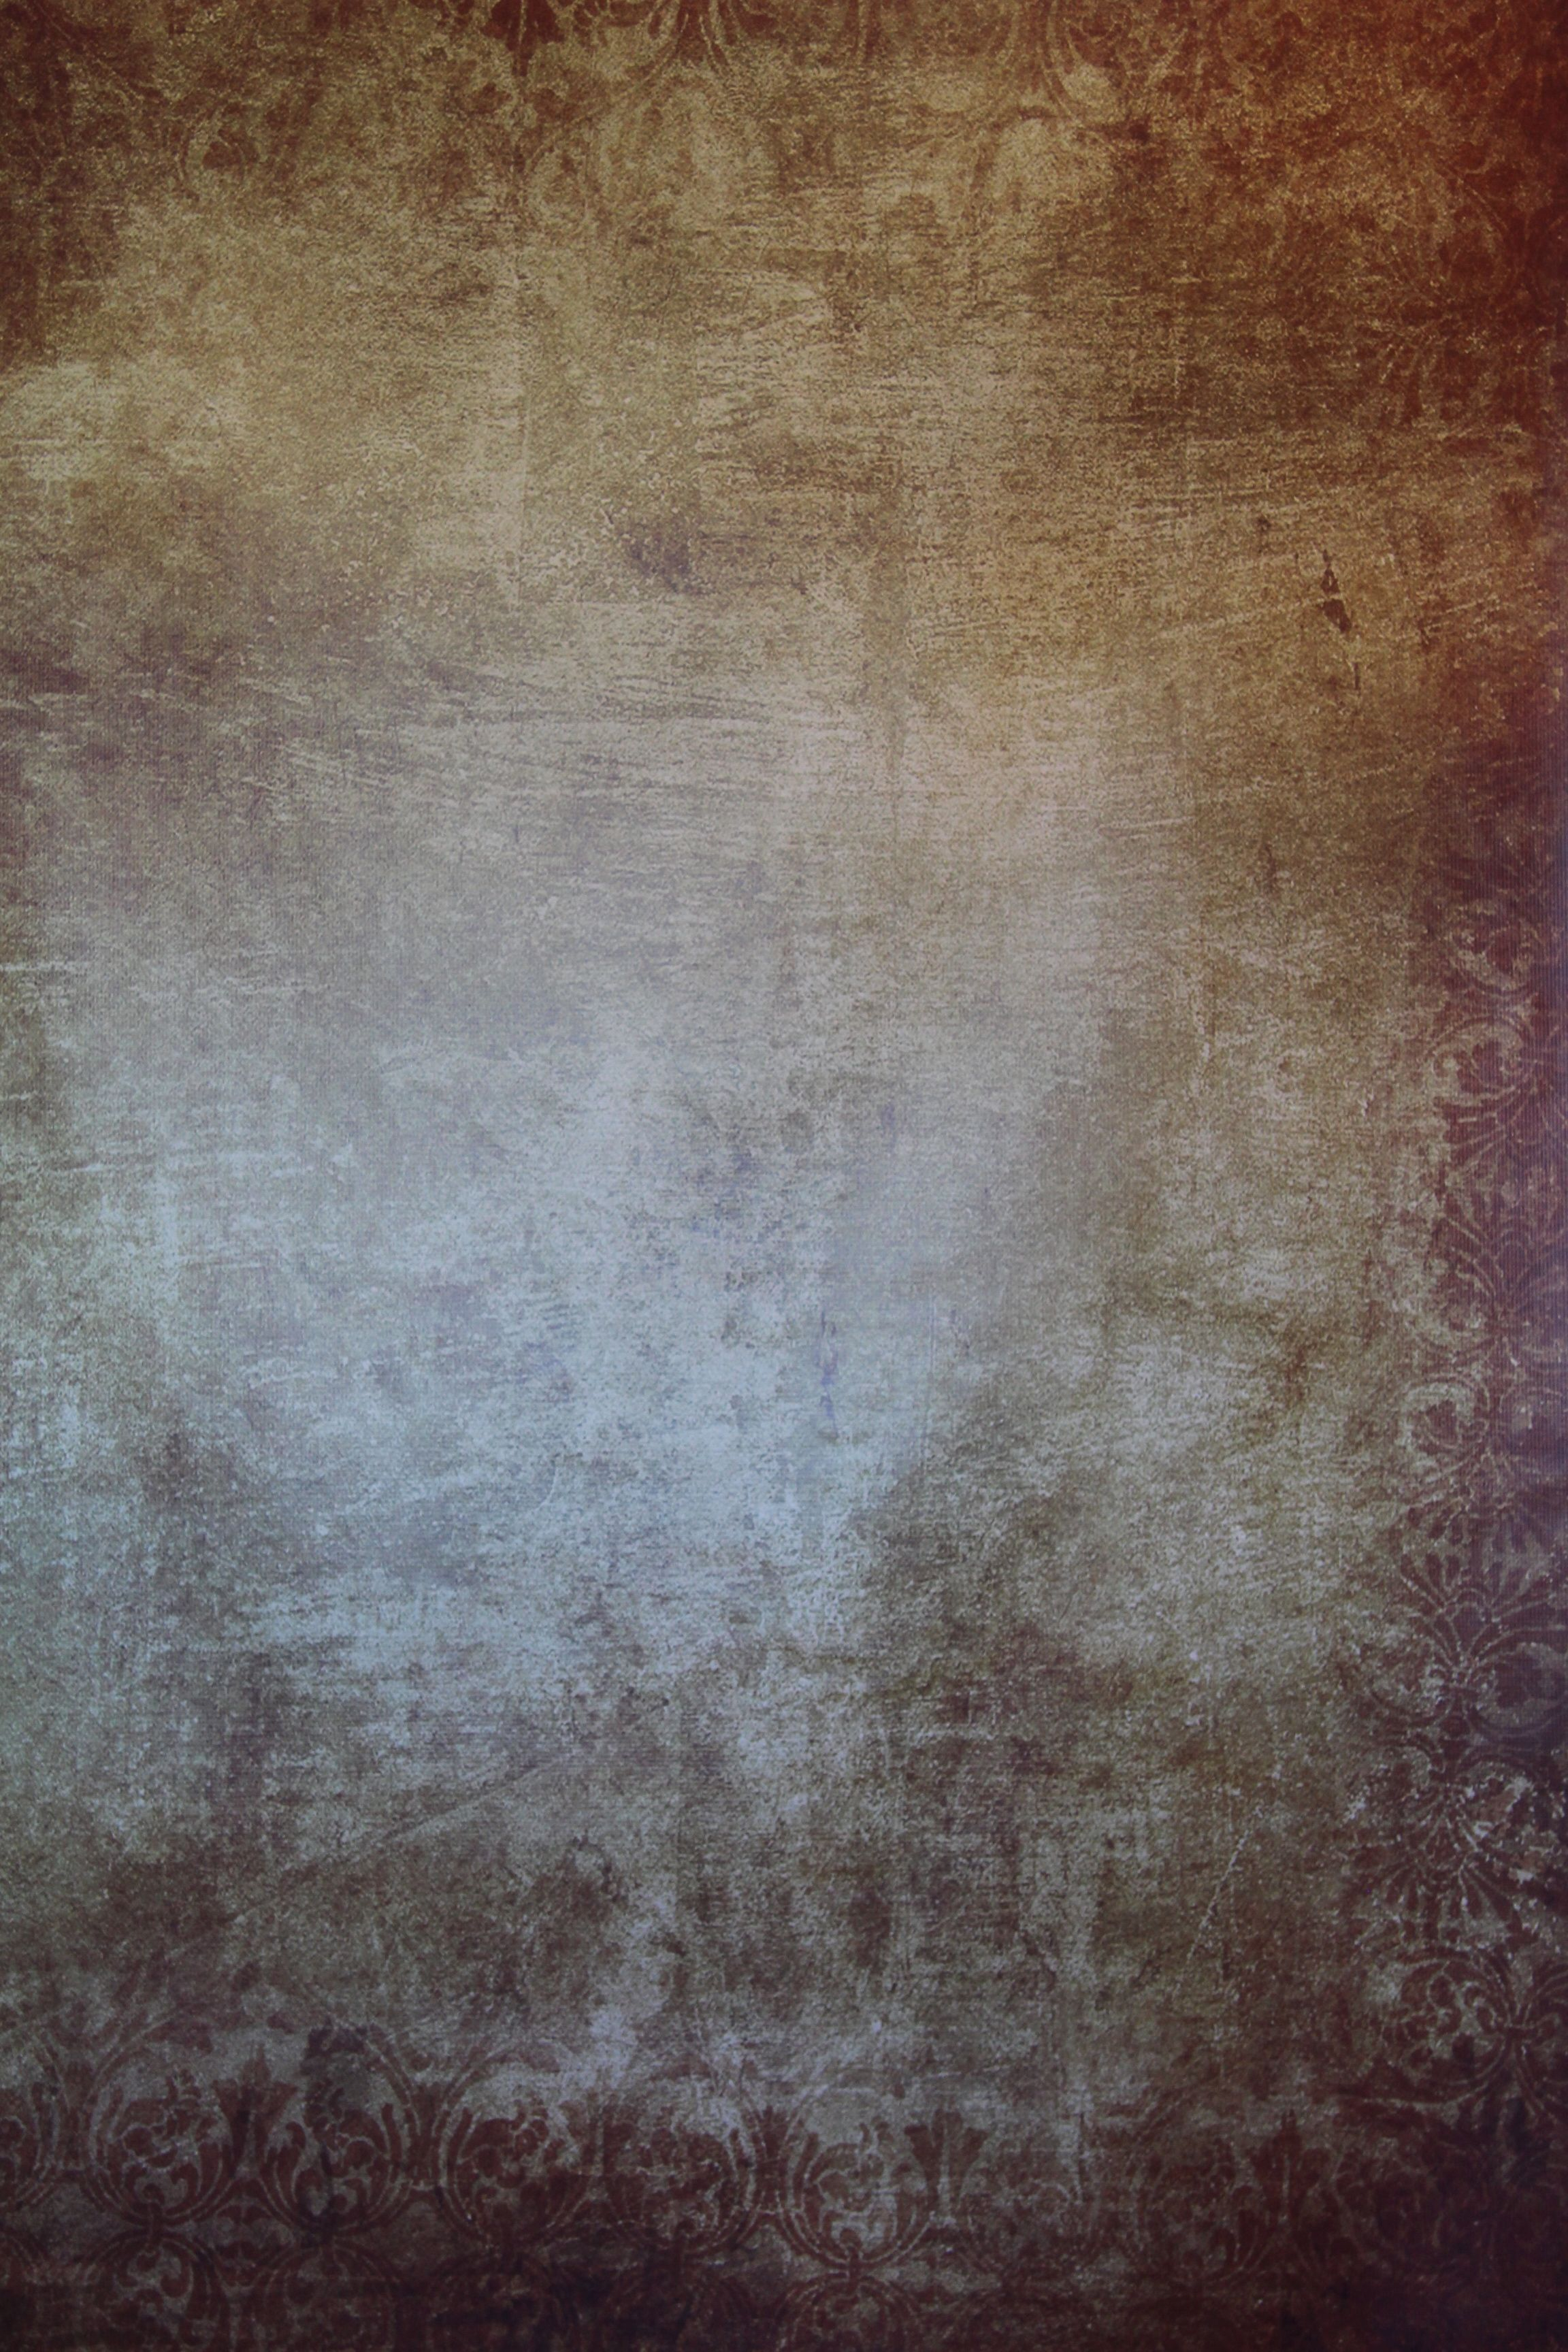 Brown Green Texture Backdrop 4 5 X 6 Background For Photography Photography Backdrops Textured Background